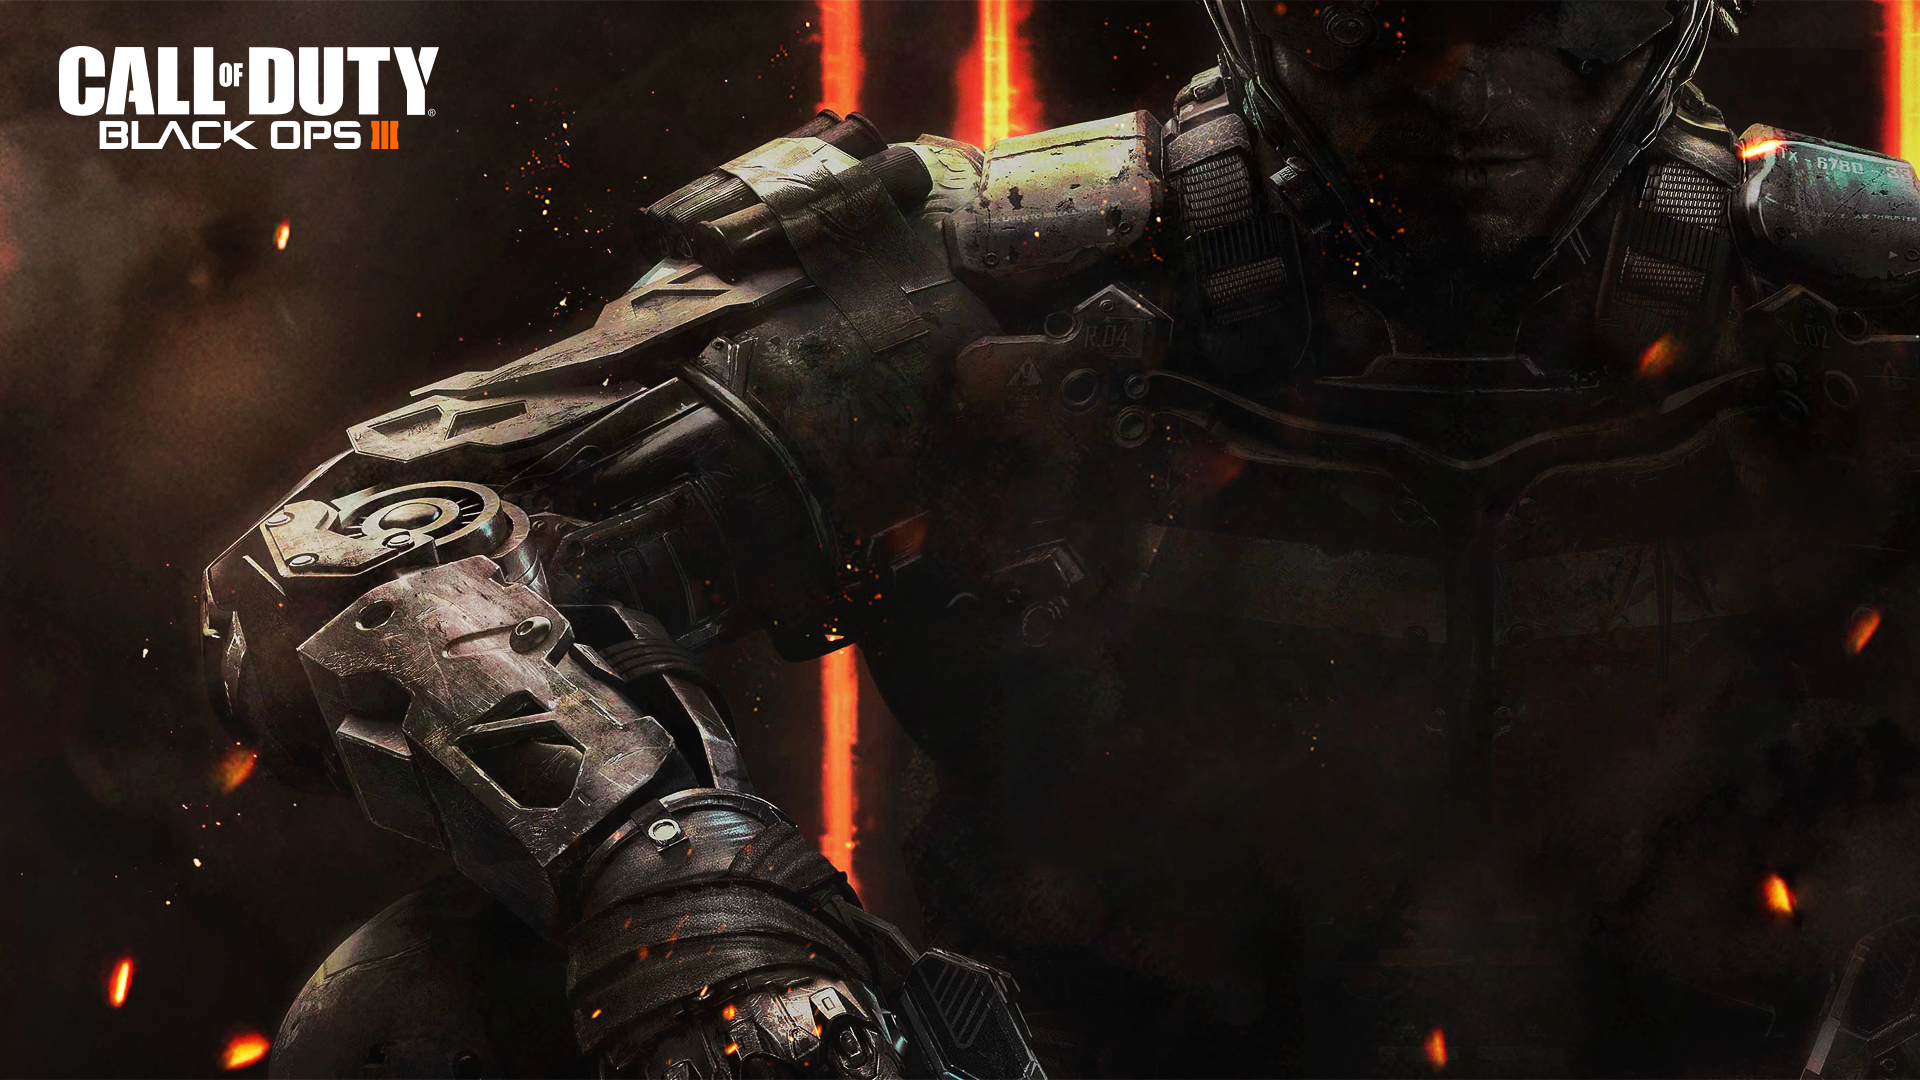 Free Download Black Ops 3 Wallpapers Bo3 Download Unofficial Call